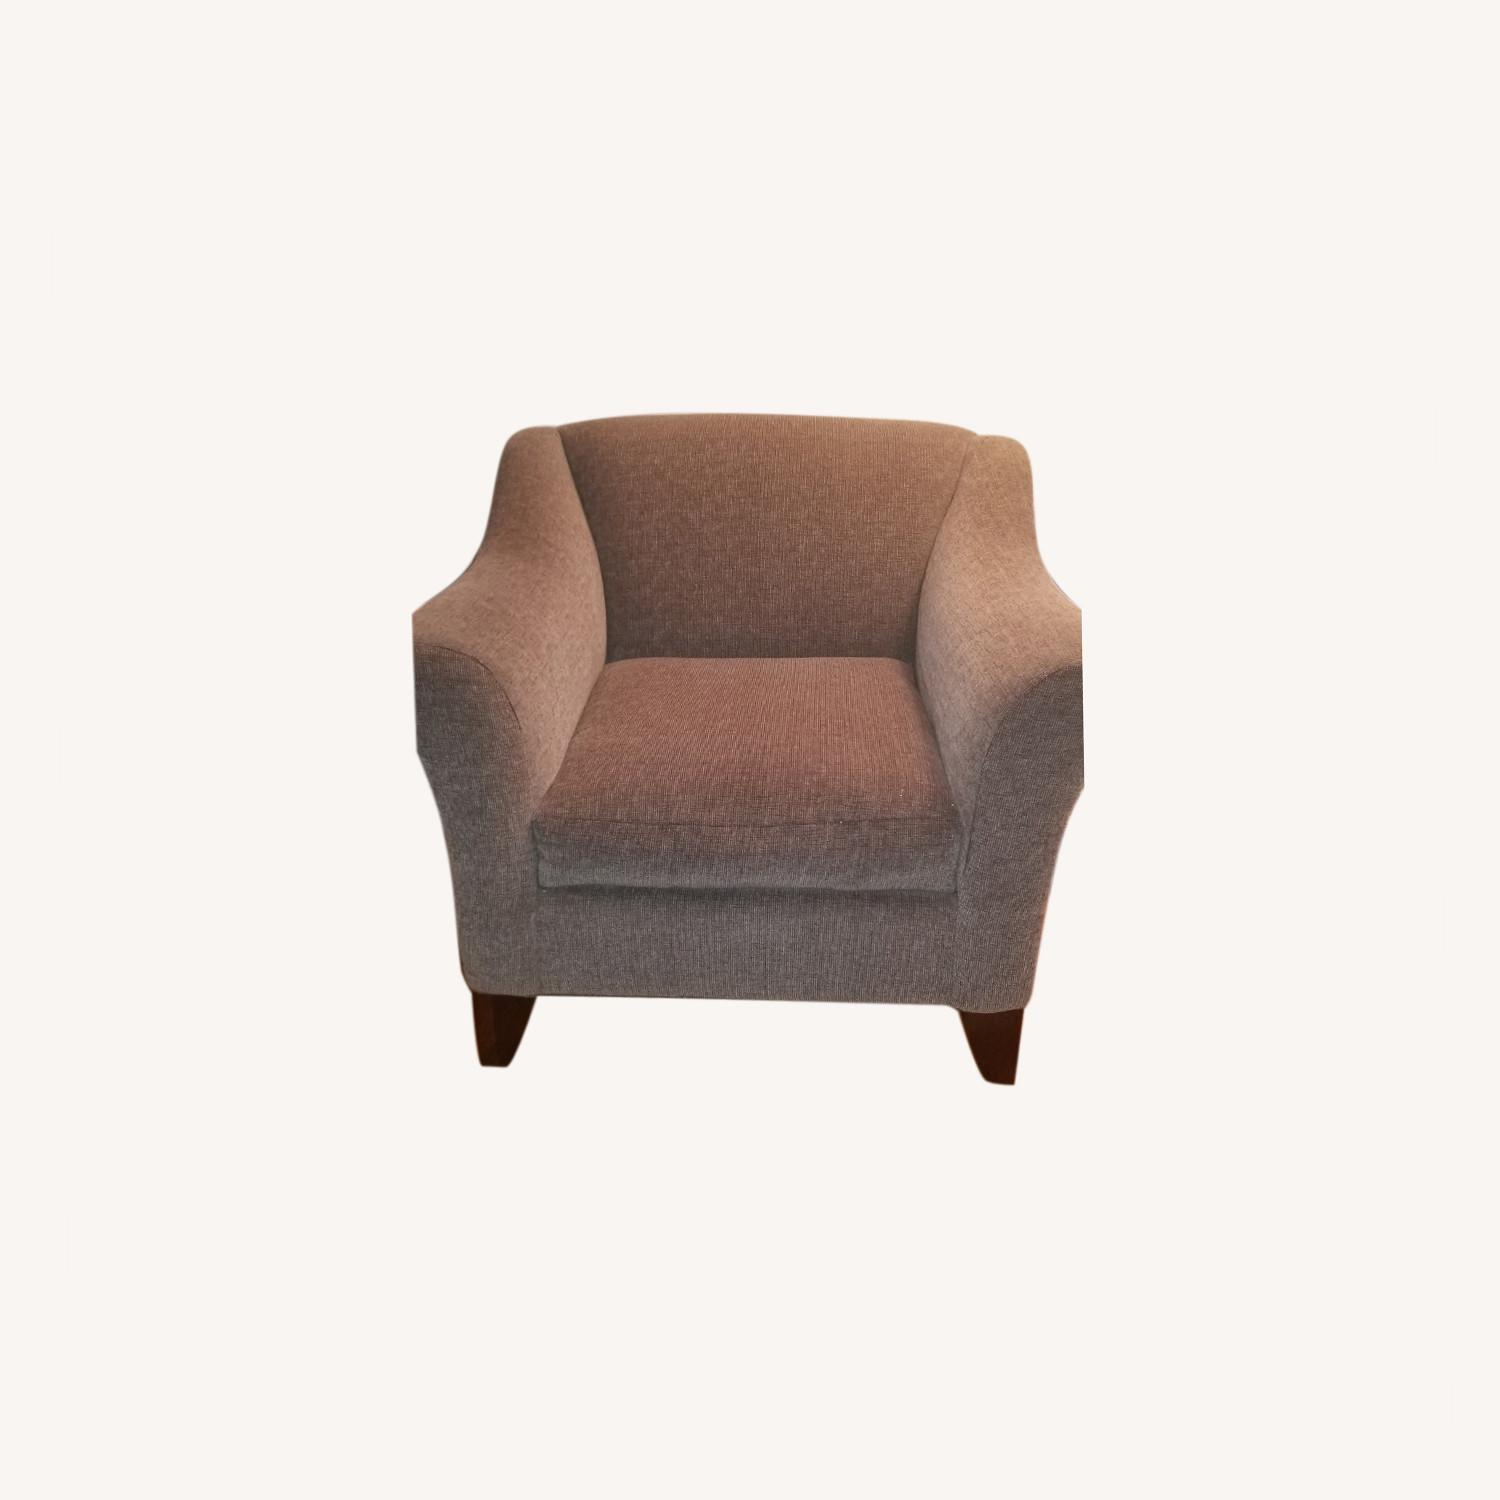 Raymour and Flanigan Green Armchair - image-0